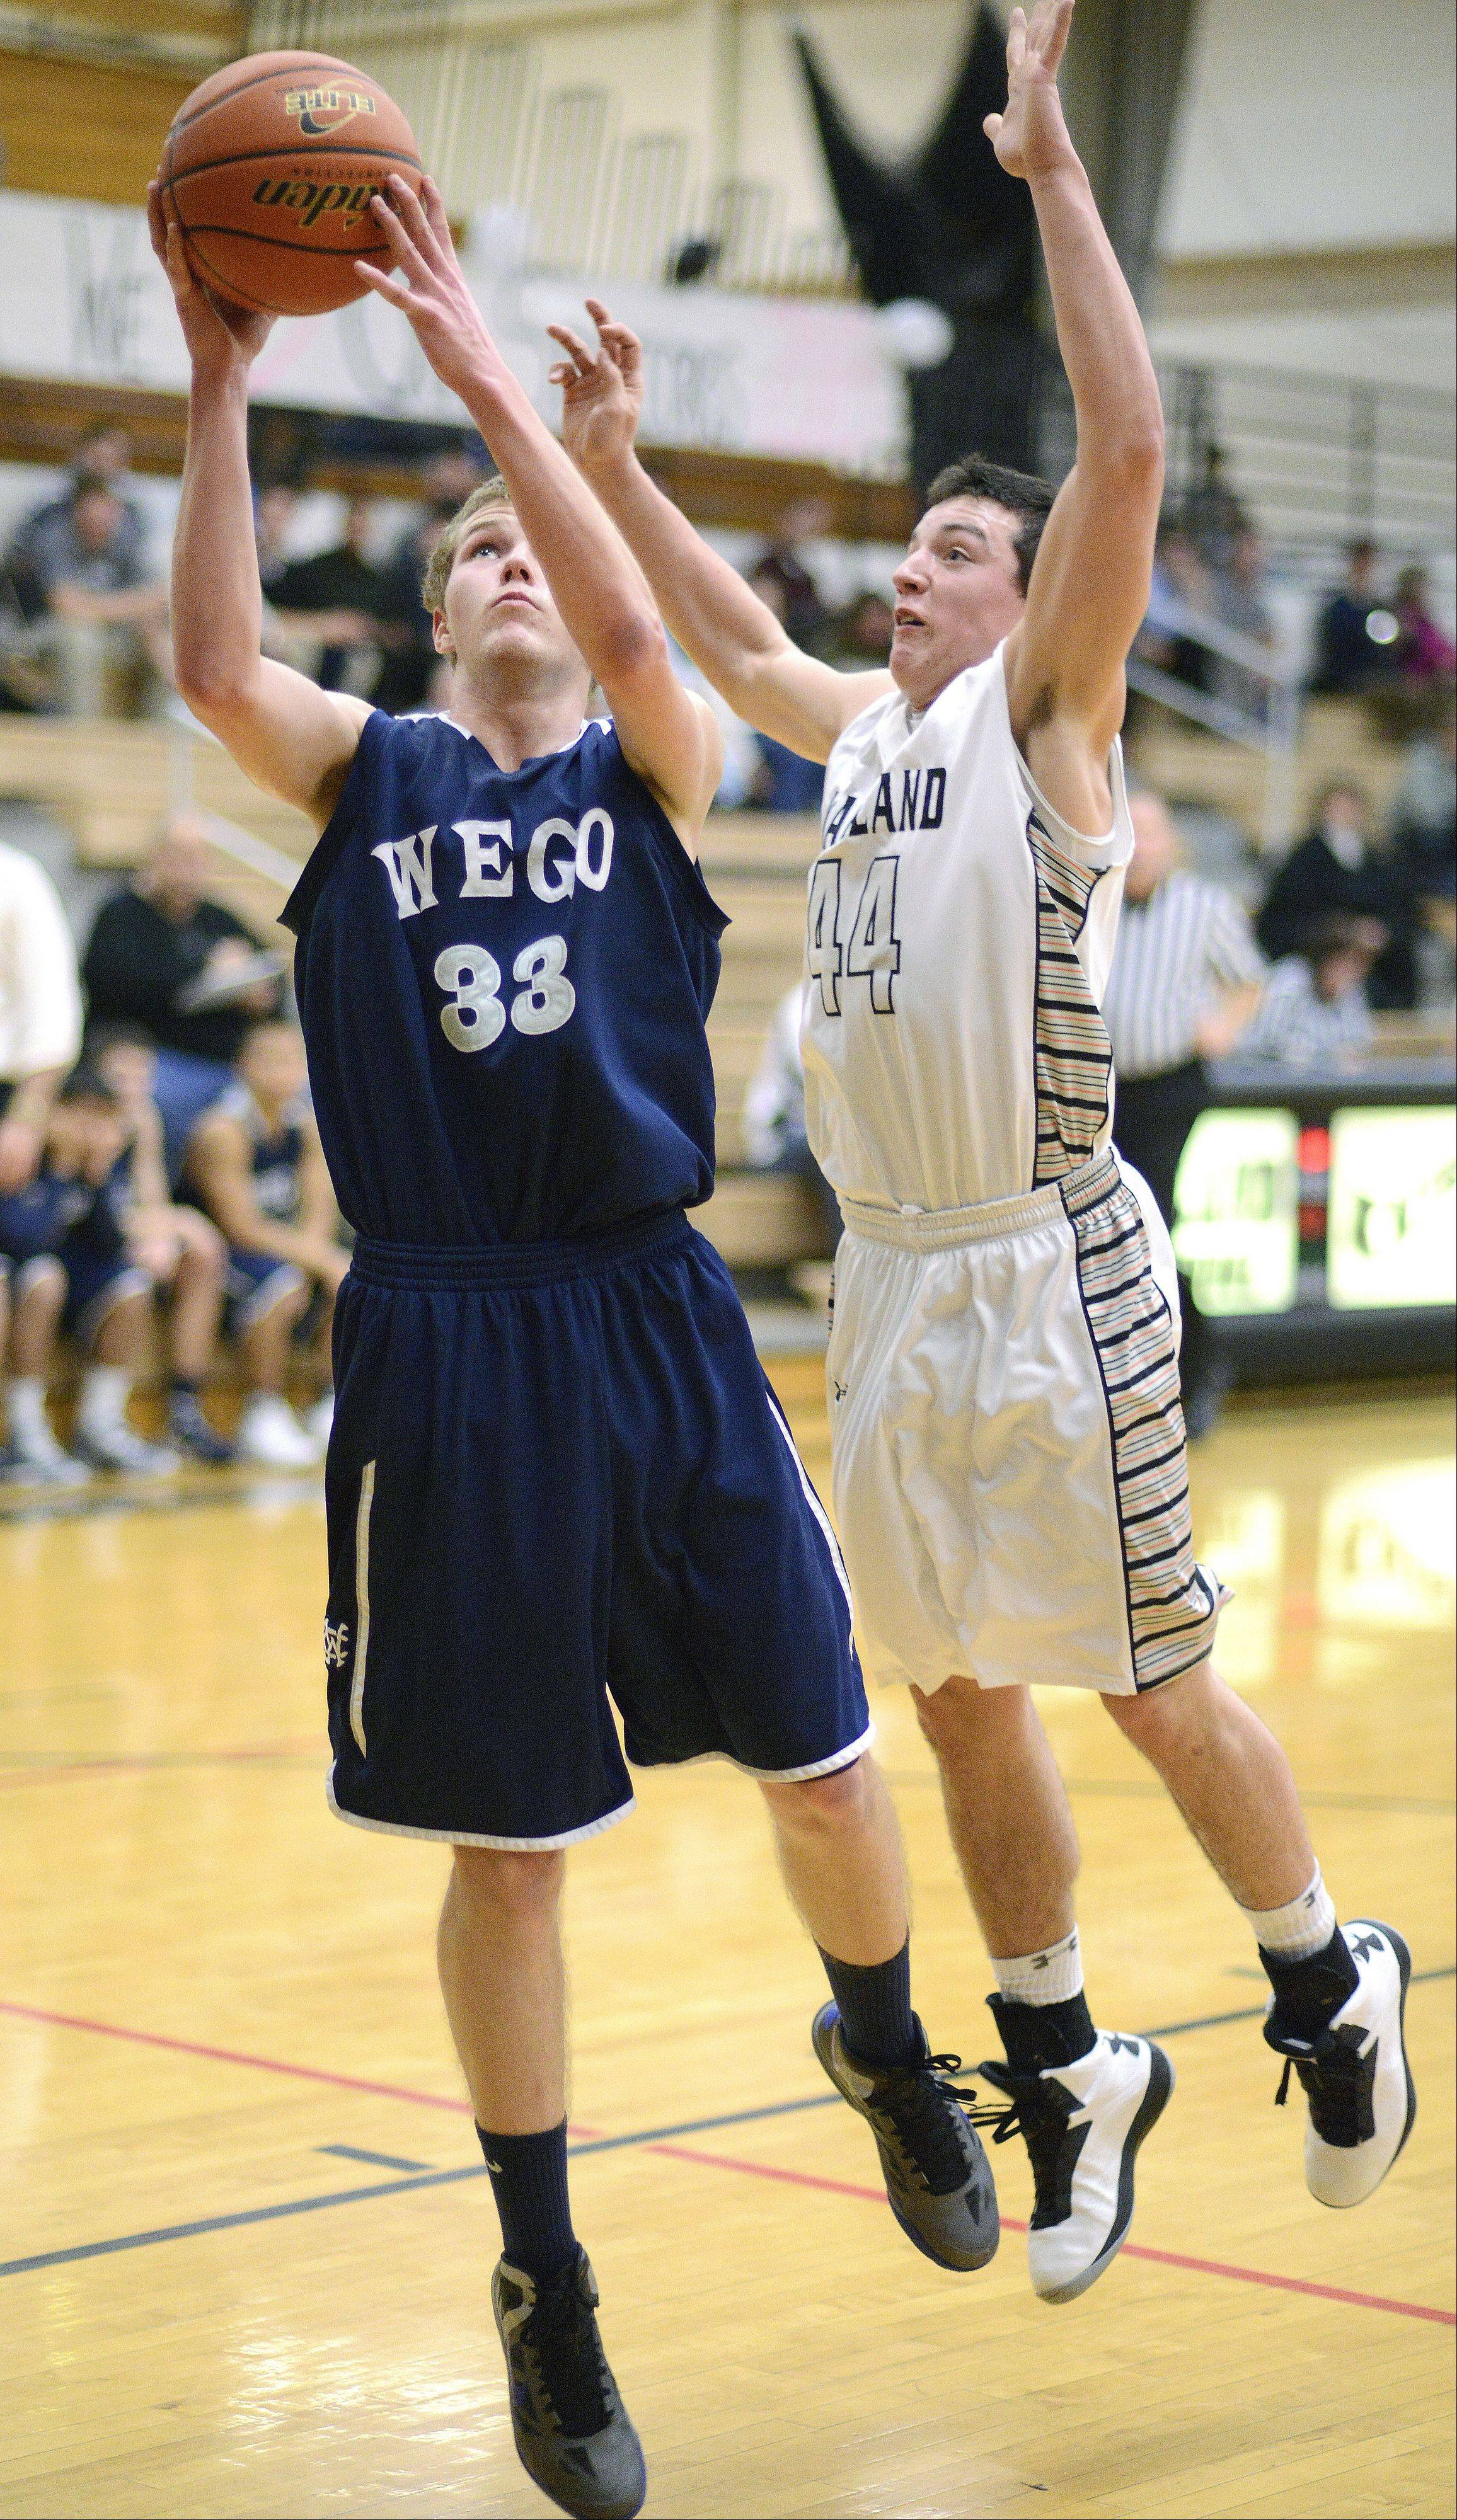 West Chicago's Mike Zajac is fouled by Kaneland's Matt Limbrunner as he makes a shot for the basket in the third quarter on Tuesday, February 5.